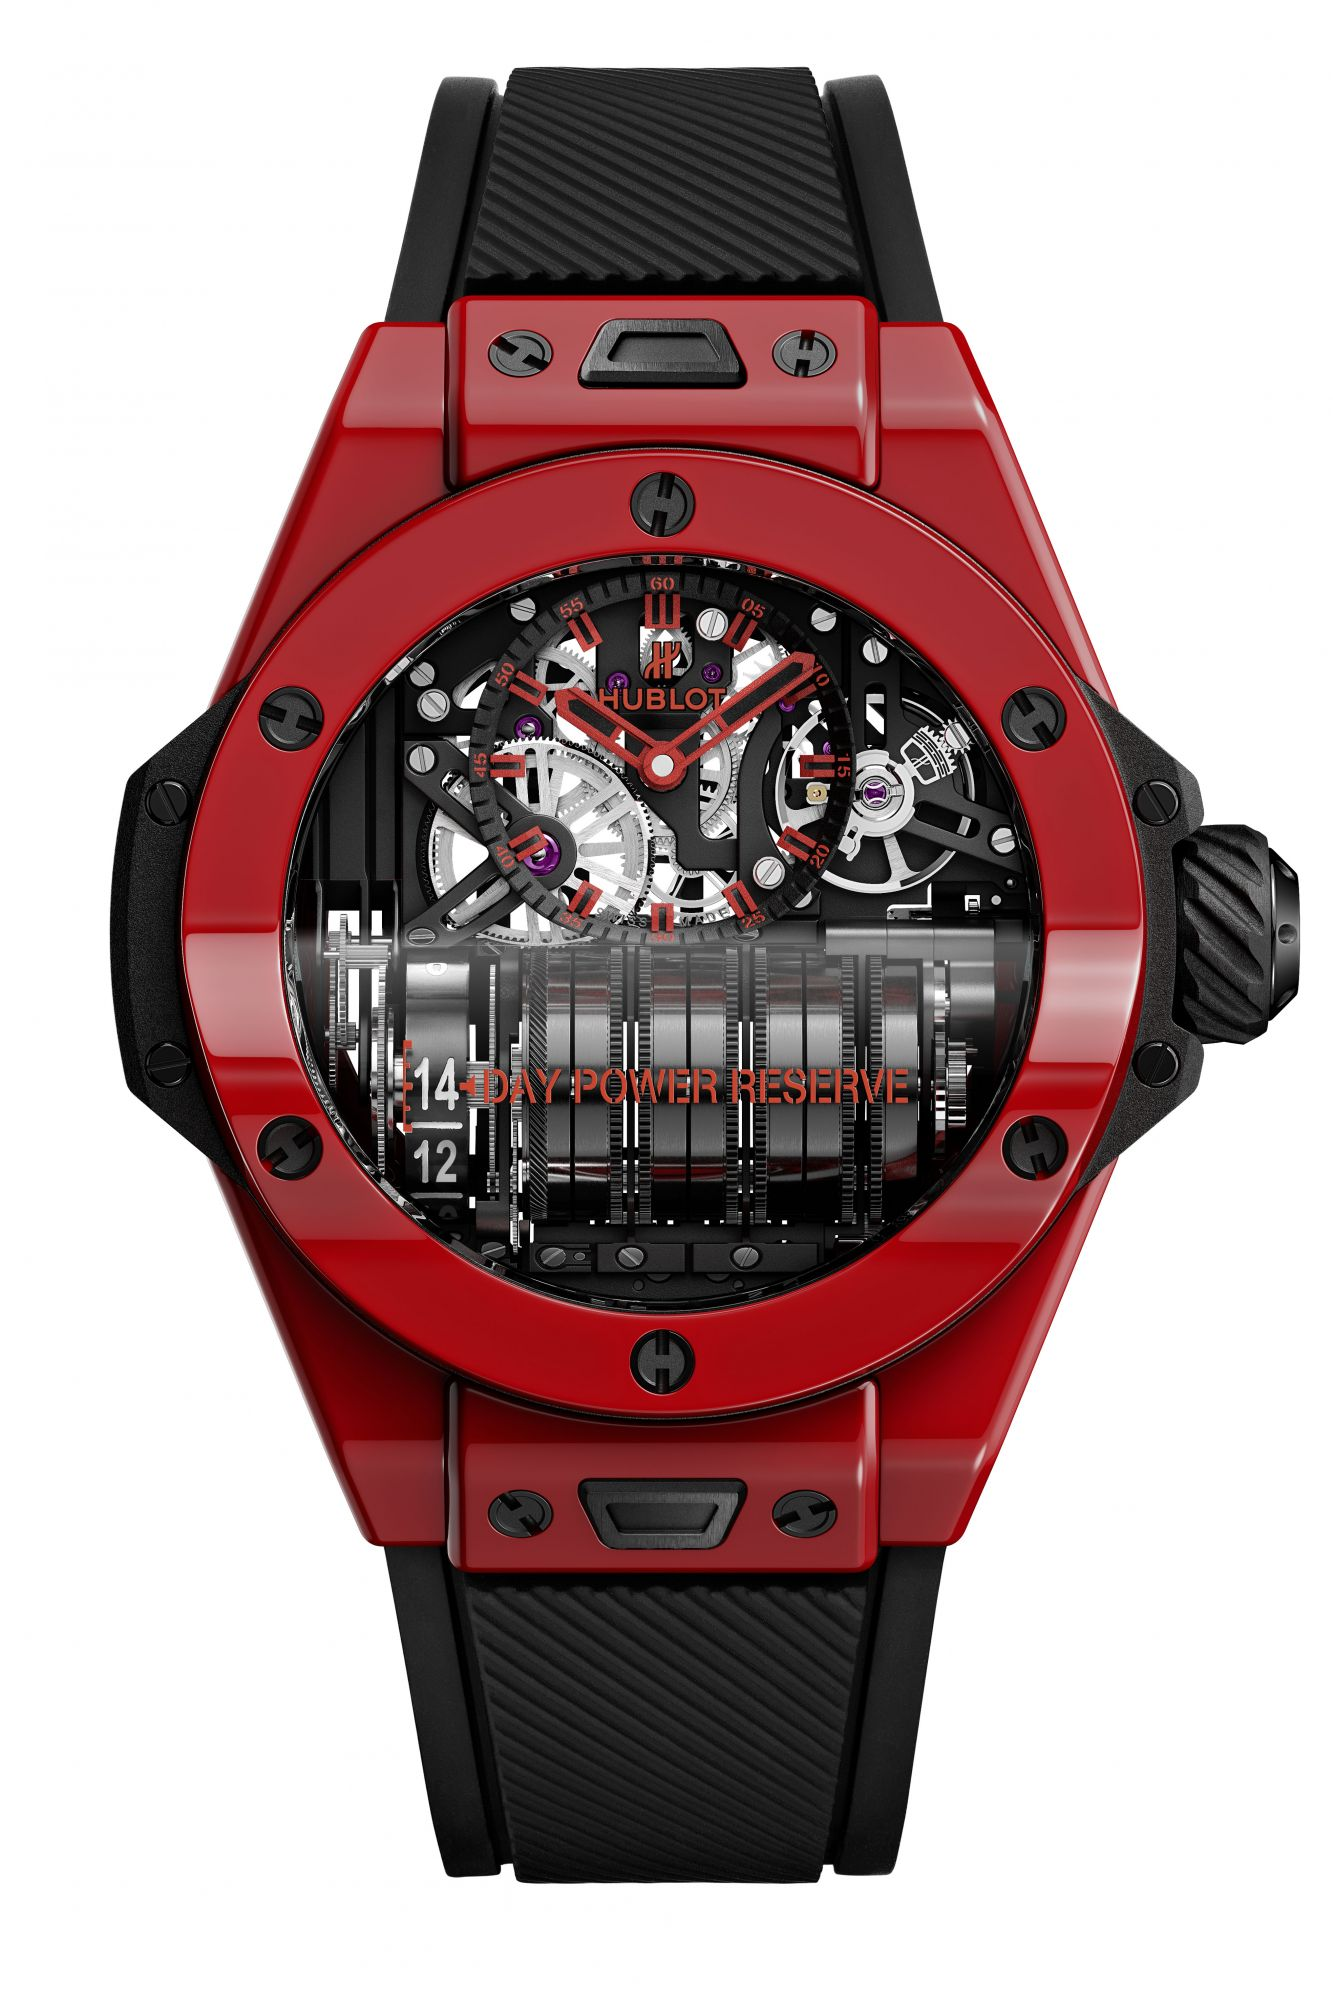 Đồng hồ Big Bang MP-11 Red Magic của Hublot